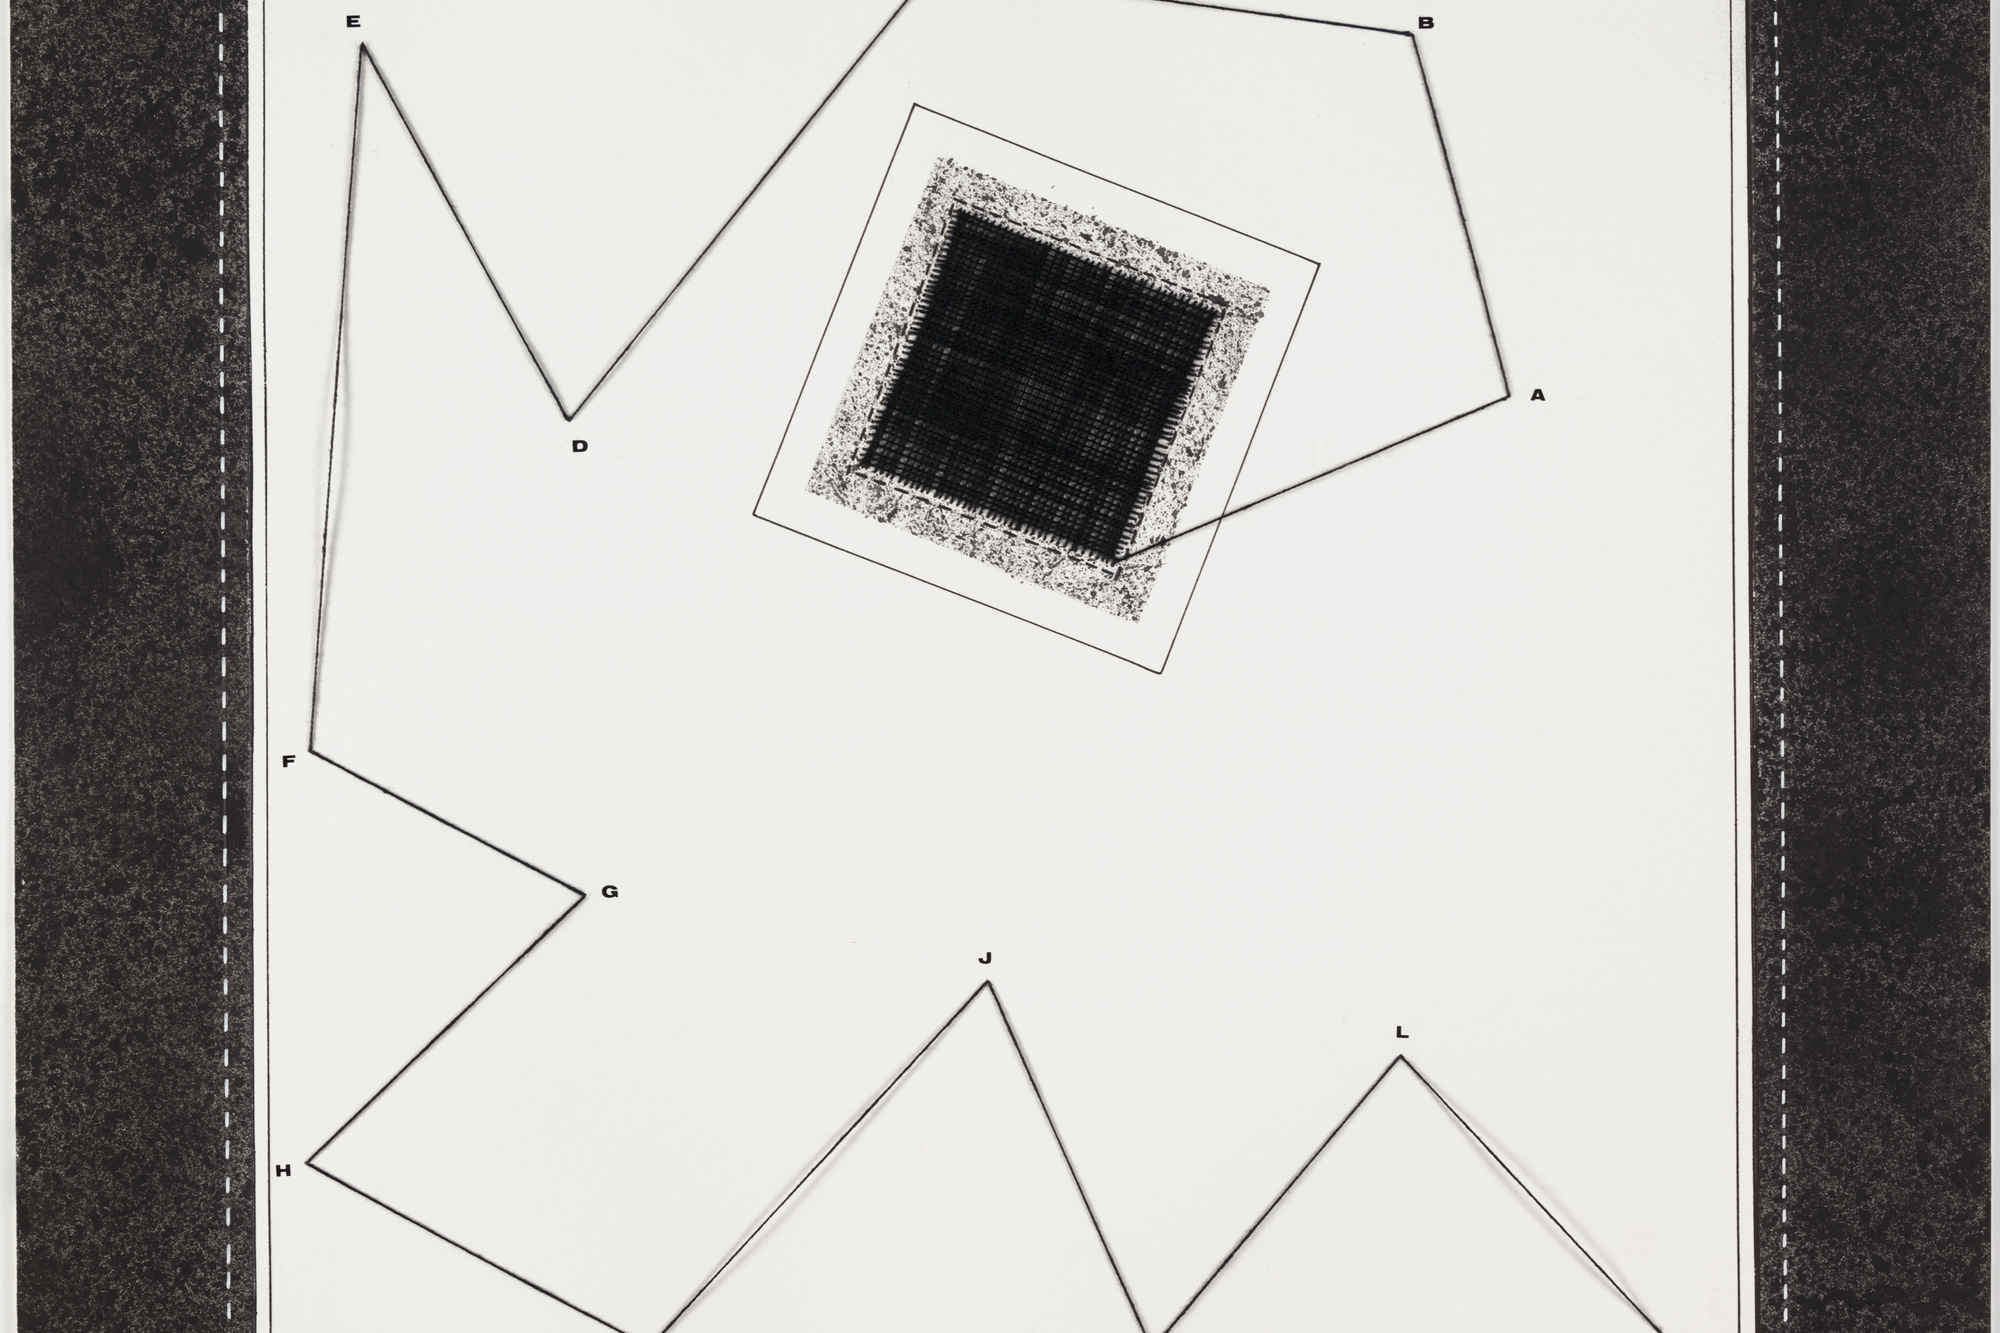 Anna Maria Maiolino. Desde A até M (From A to M), from the series Mapas Mentais (Mental Maps). 1972–99. Thread, synthetic polymer paint, ink, transfer type, and pencil on paper, 19 5/8 × 19 1/2″ (49.8 × 49.5 cm). The Museum of Modern Art, purchase